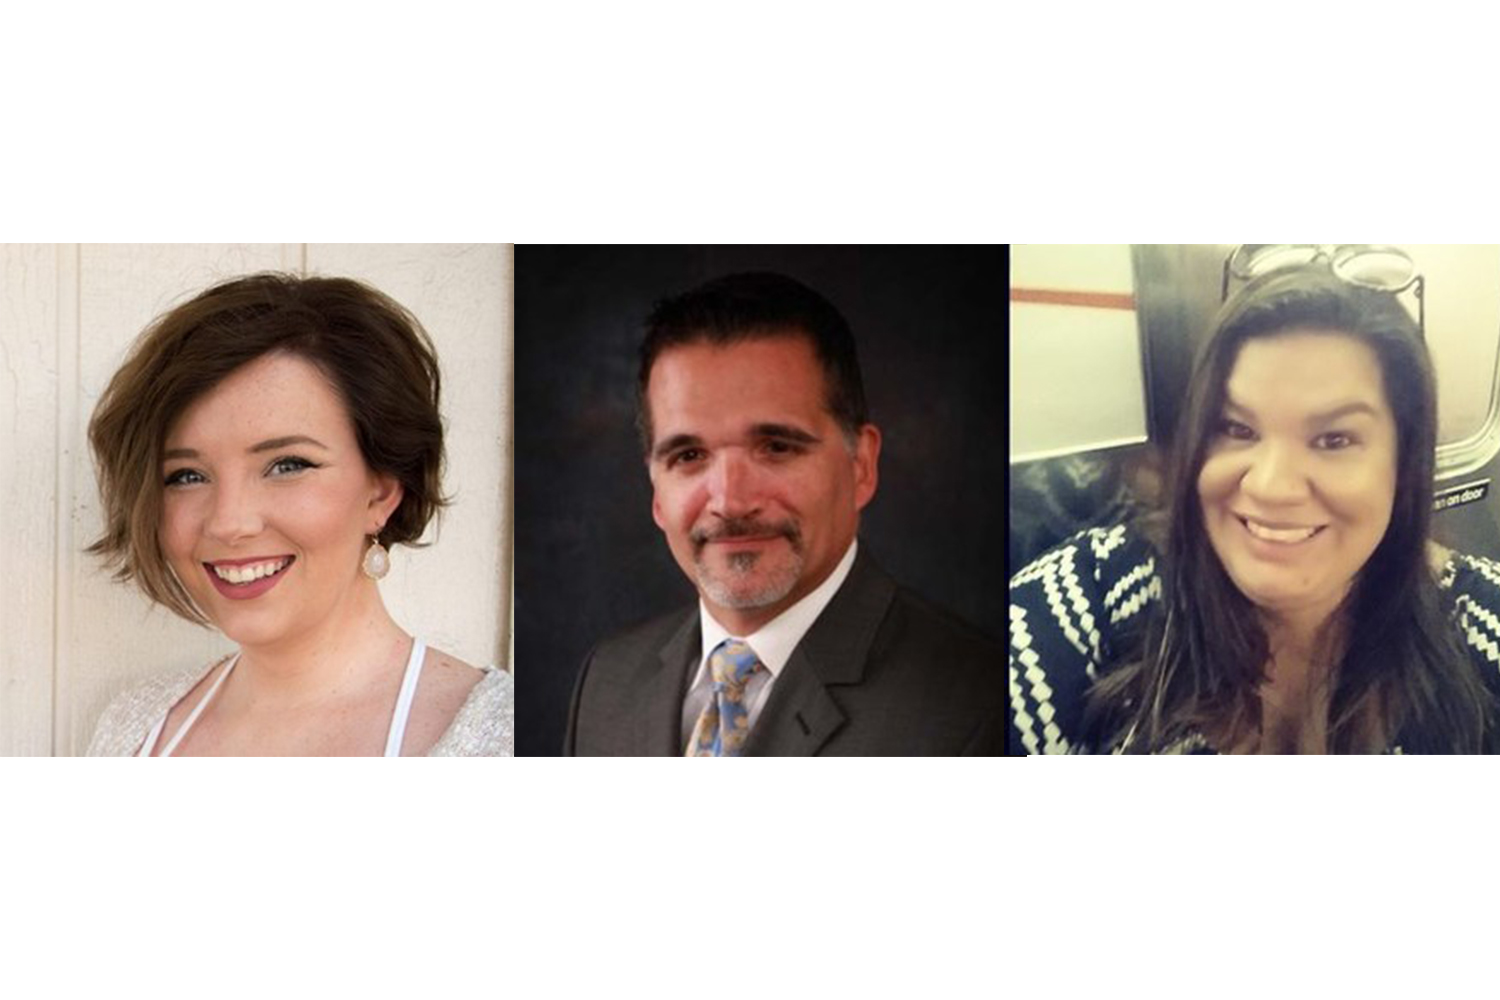 Catherine Ballard, Paul Crockett, and Erica Vallejo among teachers who have announced their departure from Akins at the end of the school year